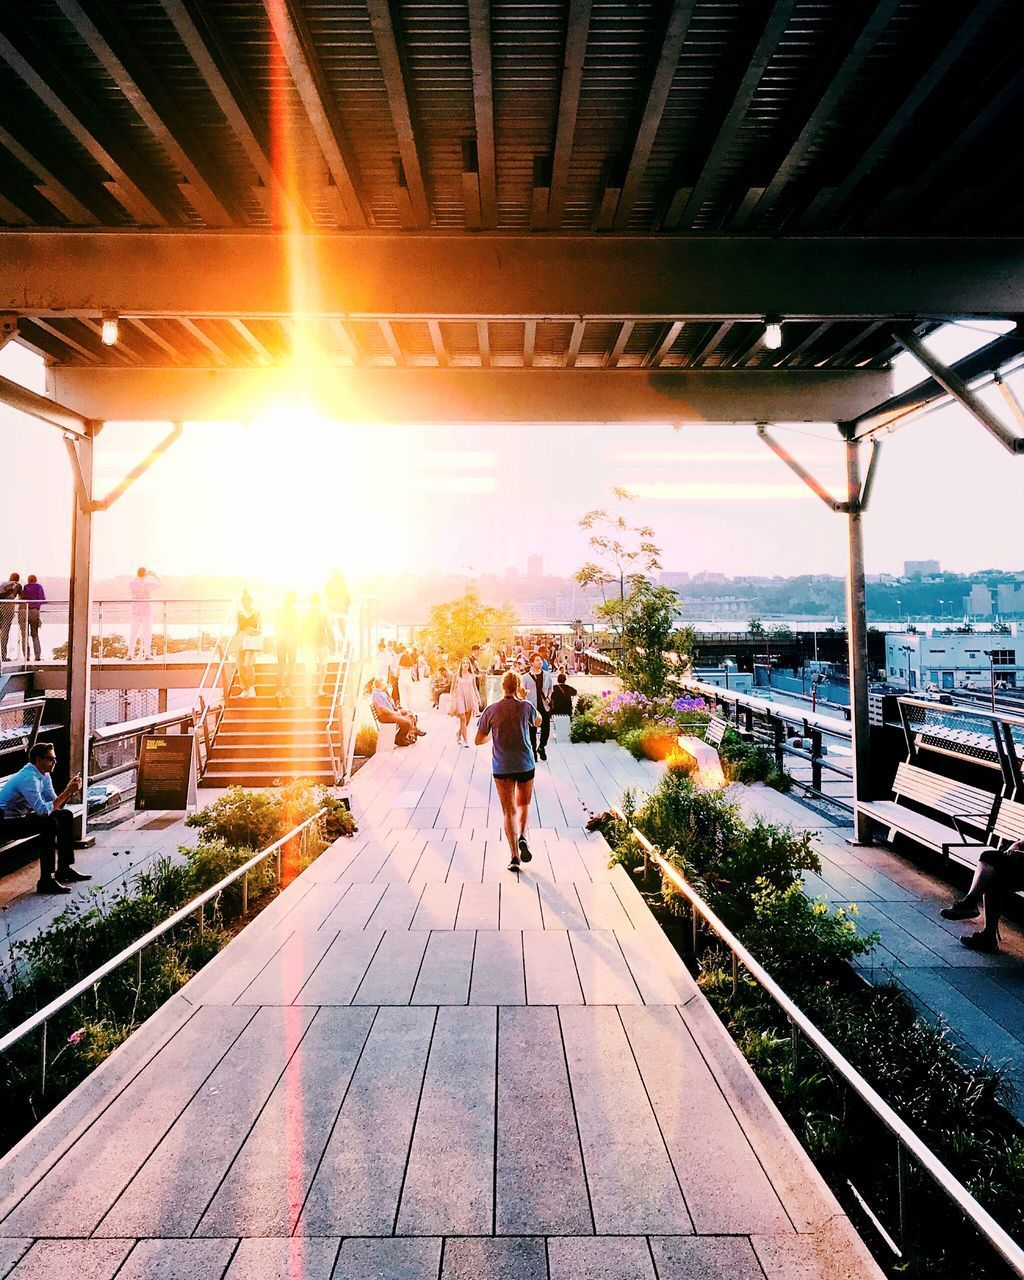 architecture, built structure, sky, sunlight, real people, lifestyles, water, nature, building exterior, lens flare, leisure activity, day, men, adult, sunset, group of people, outdoors, rear view, women, sun